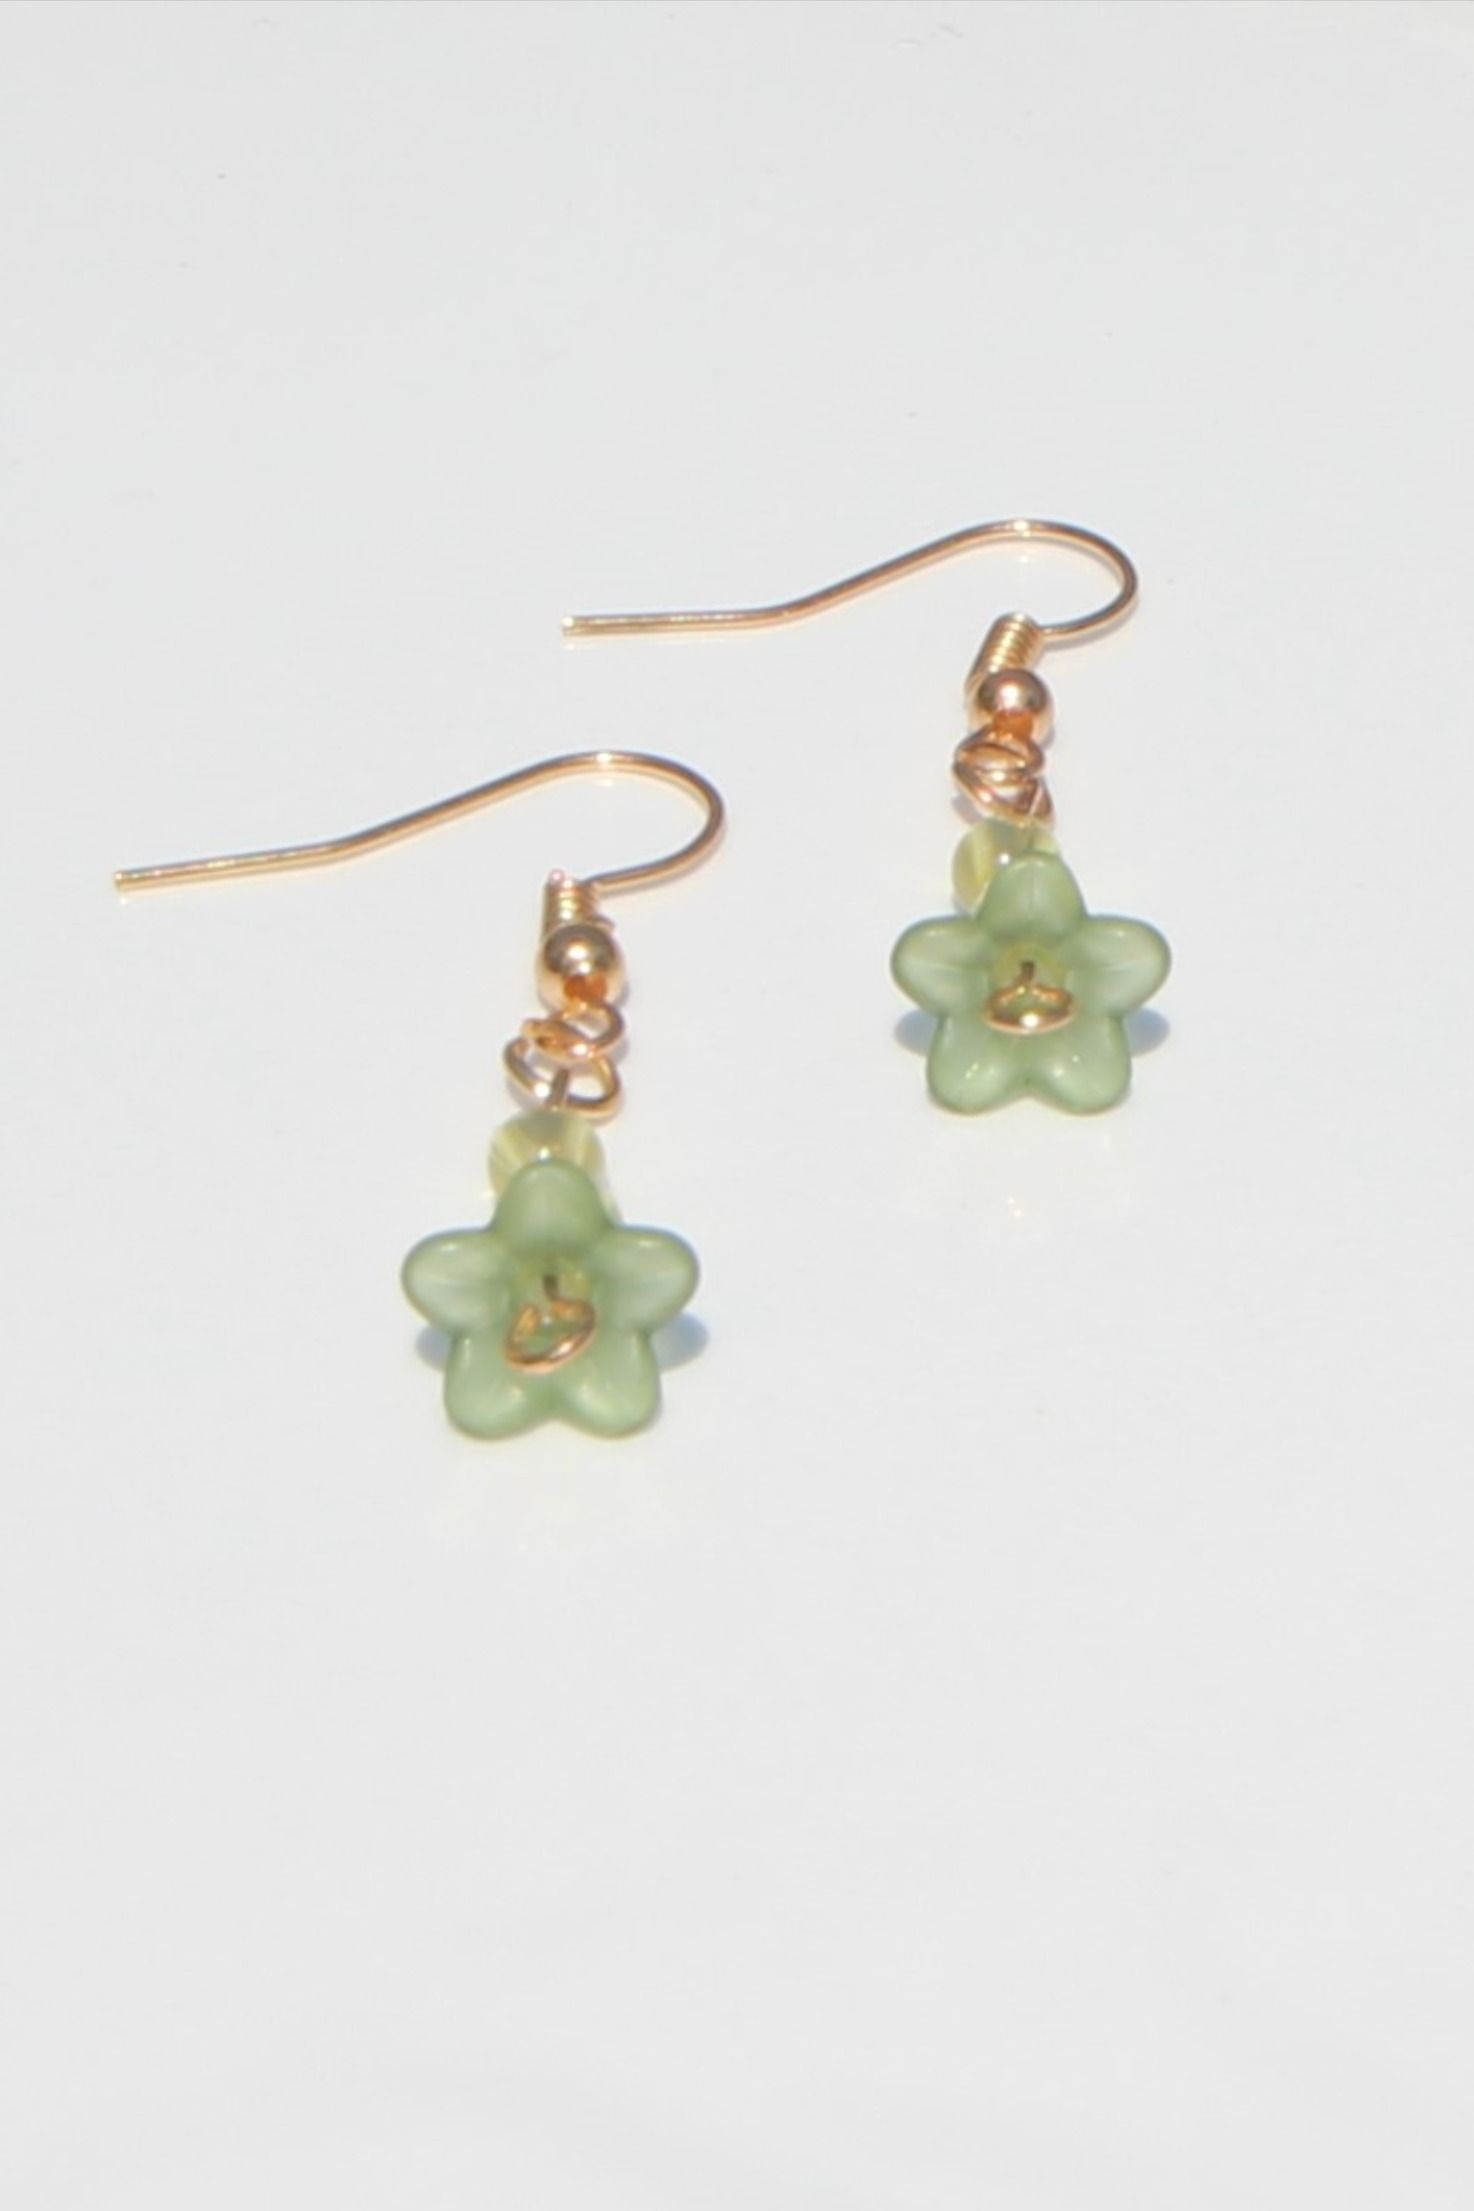 Stunning green and floral dangle earrings